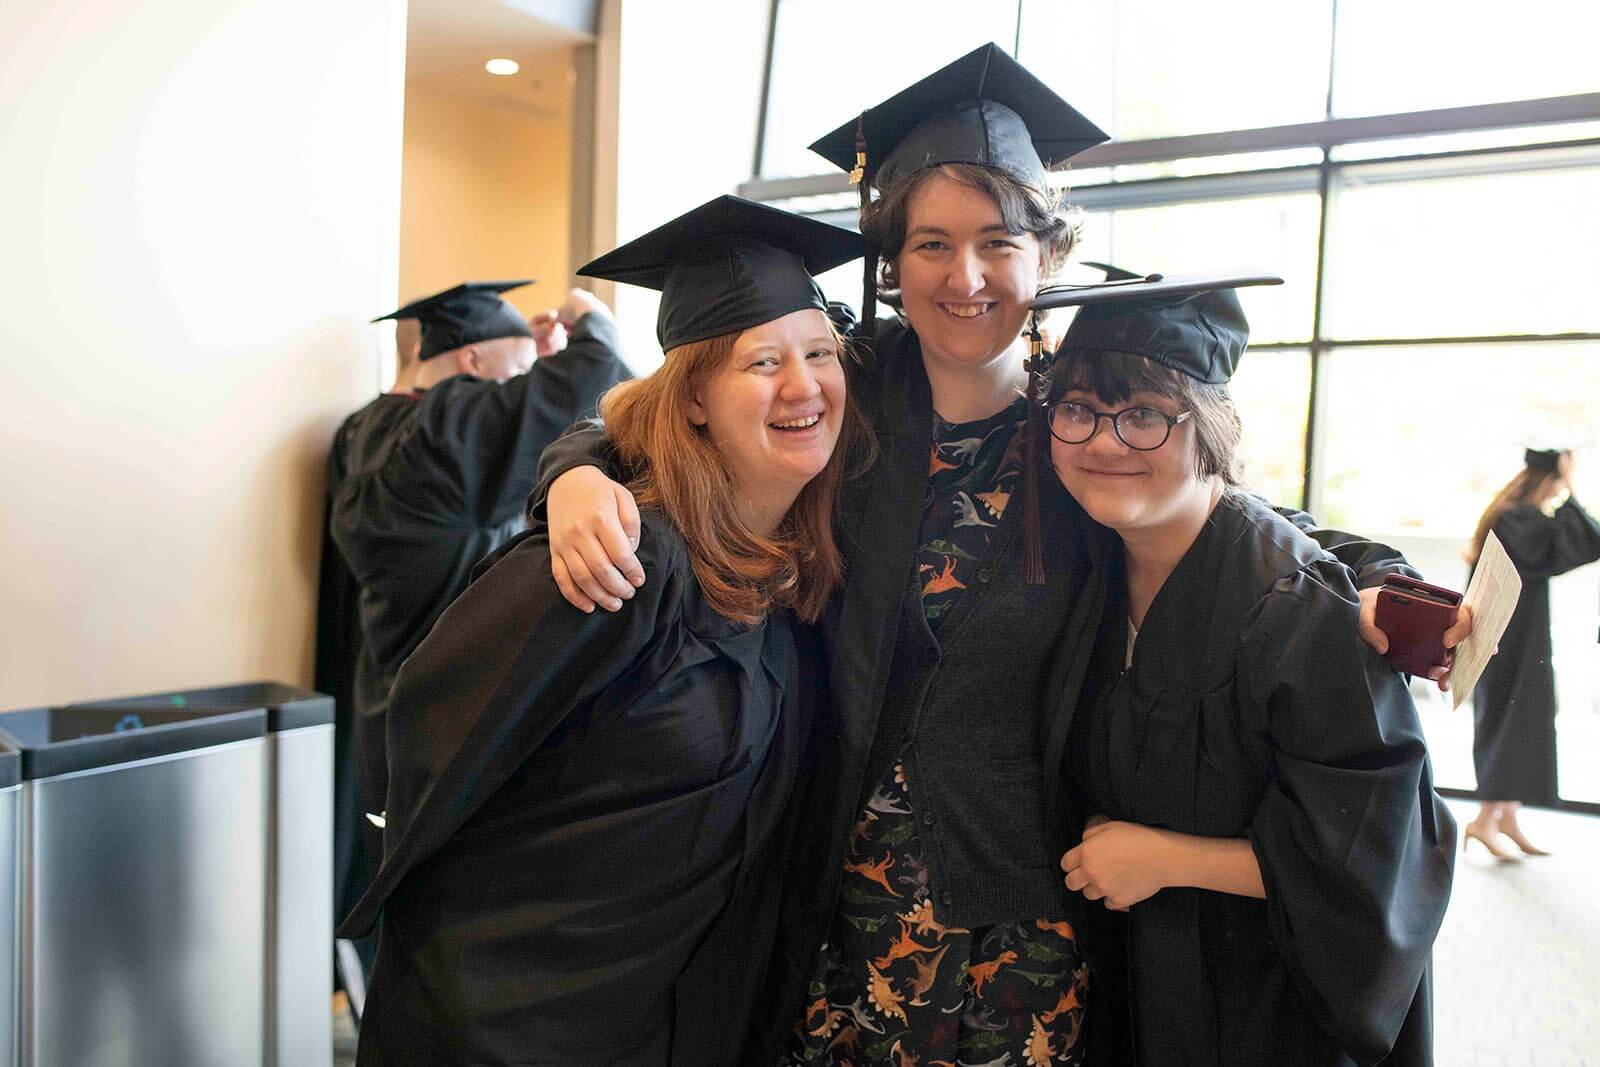 Three students in graduation robes and mortarboards embrace each other for a photo in a convention center hallway.